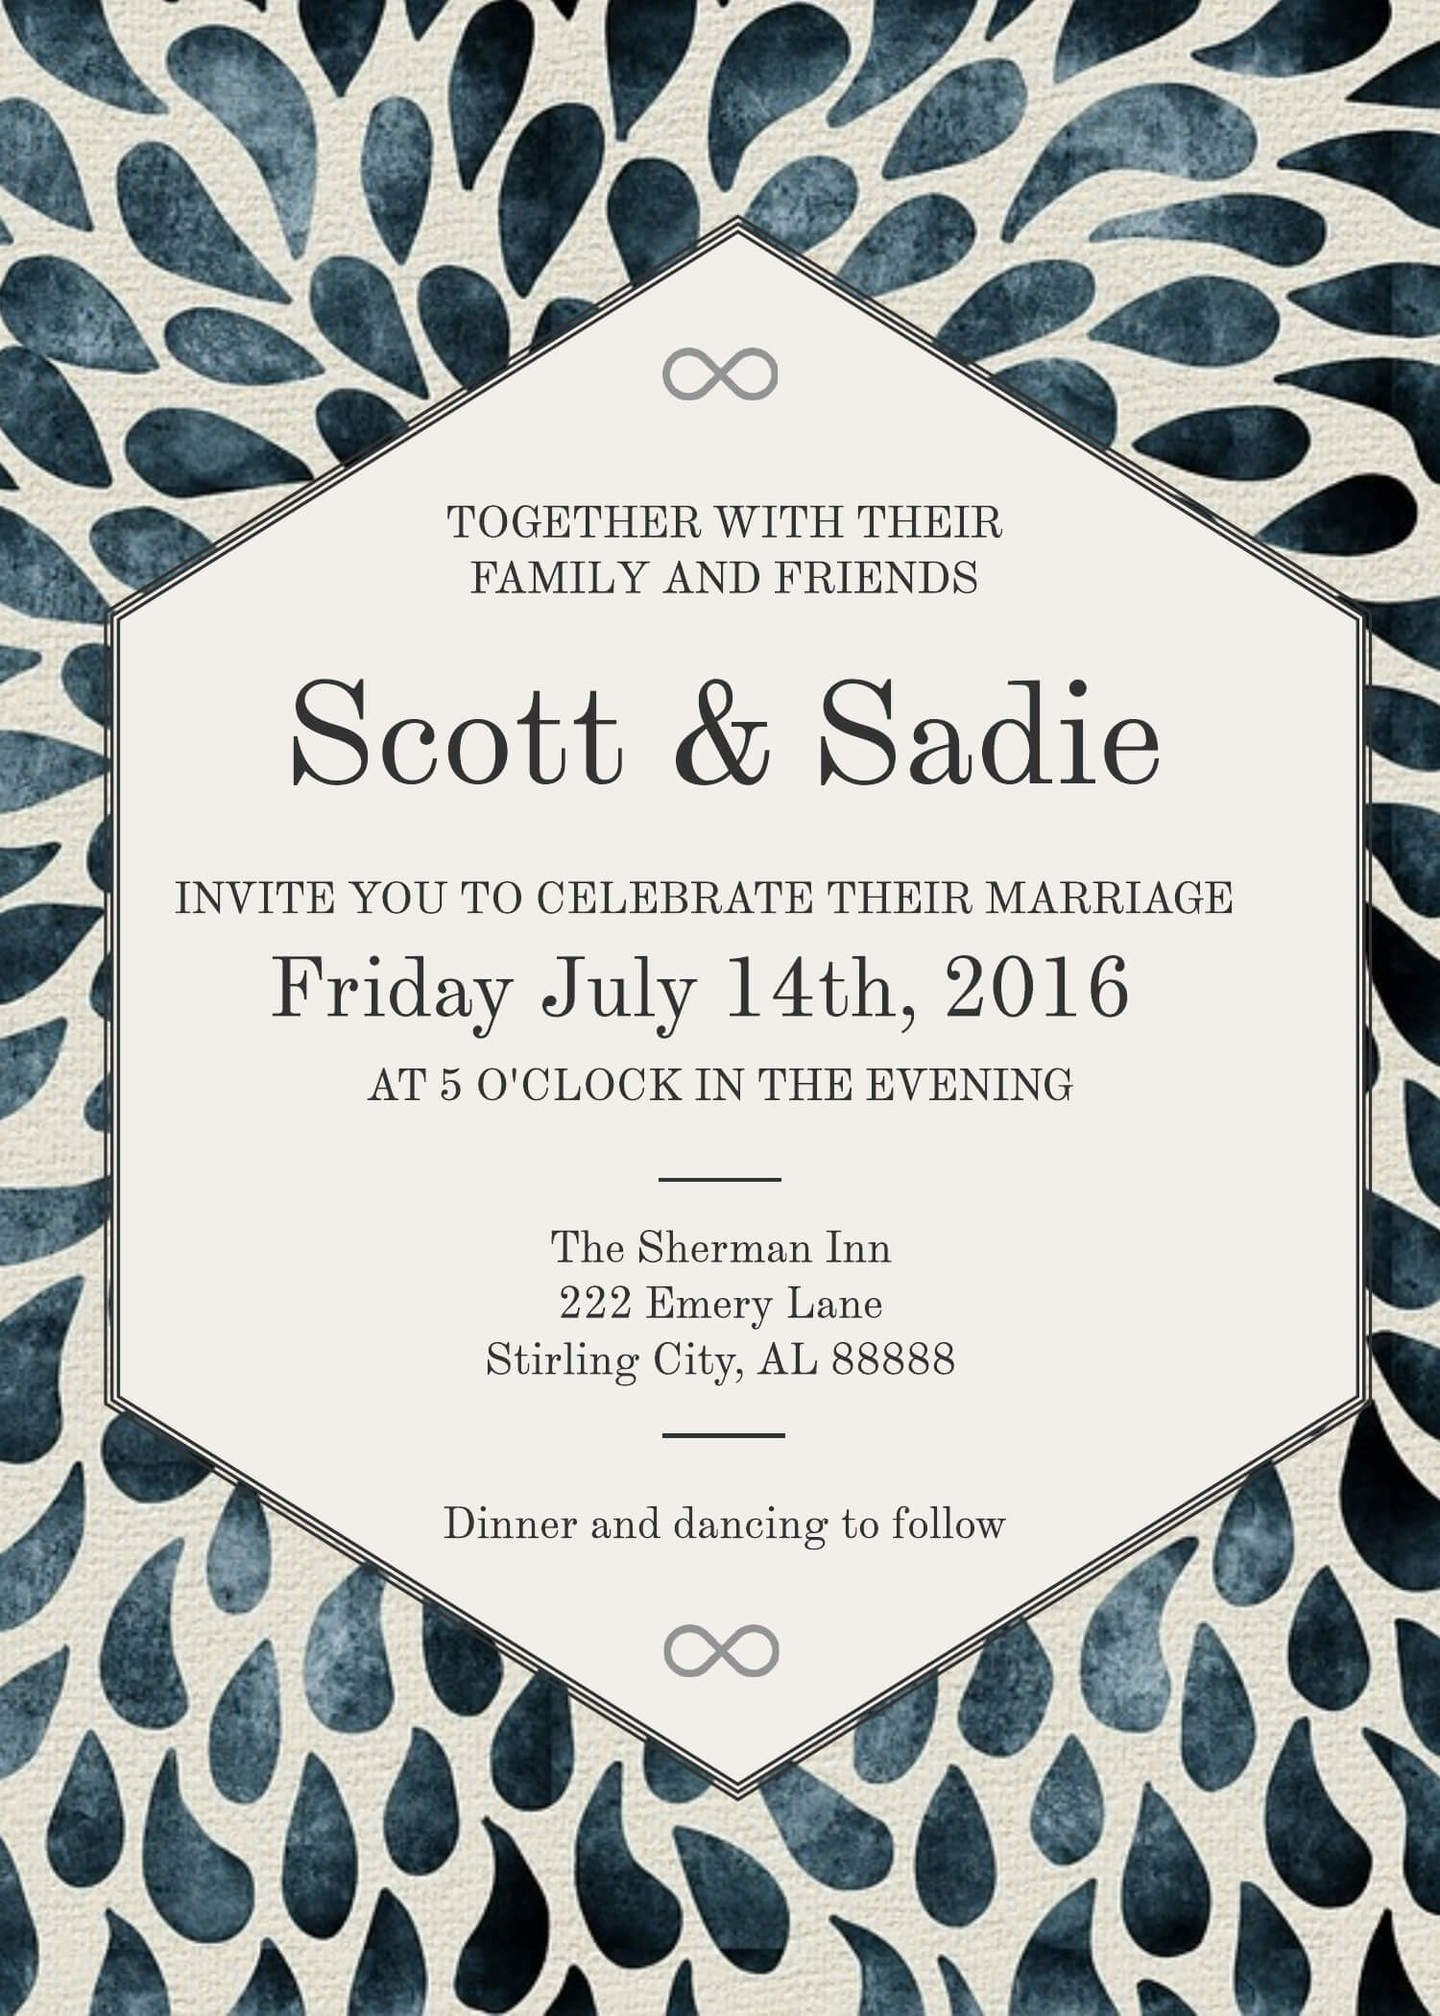 Template for Wedding Invitations 16 Free Invitation Card Templates & Examples Lucidpress